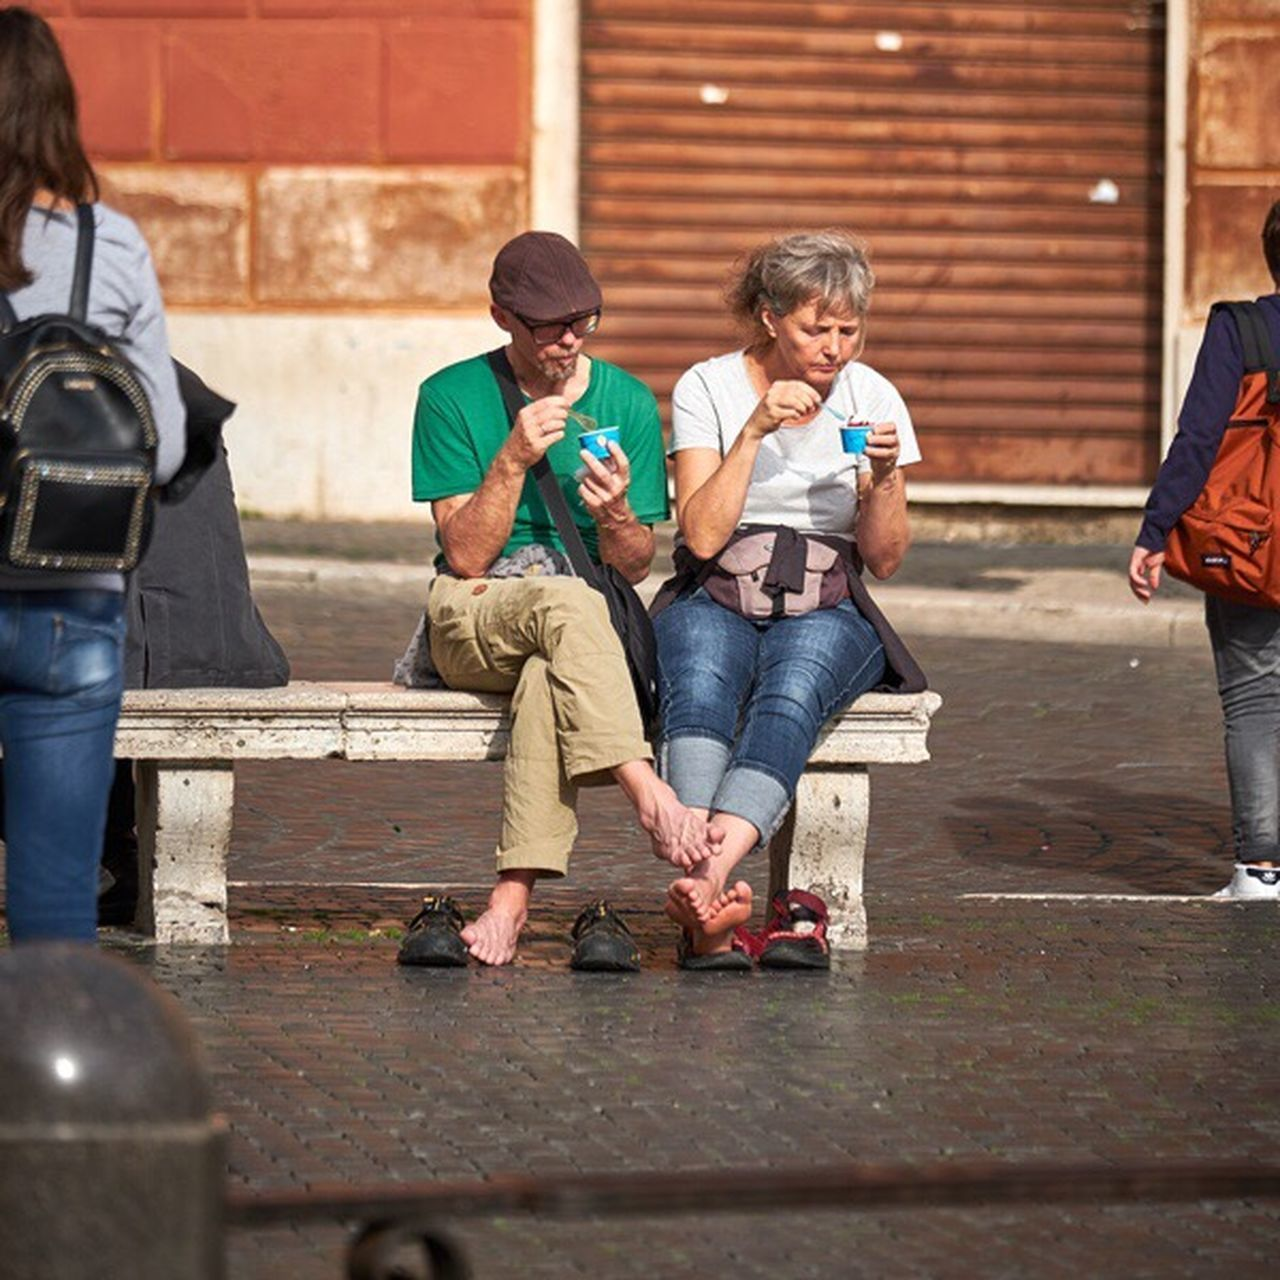 Tourism Gelato Italy Piazza Navona Sitting Ice Cream Tourists Funny Barefoot Rome